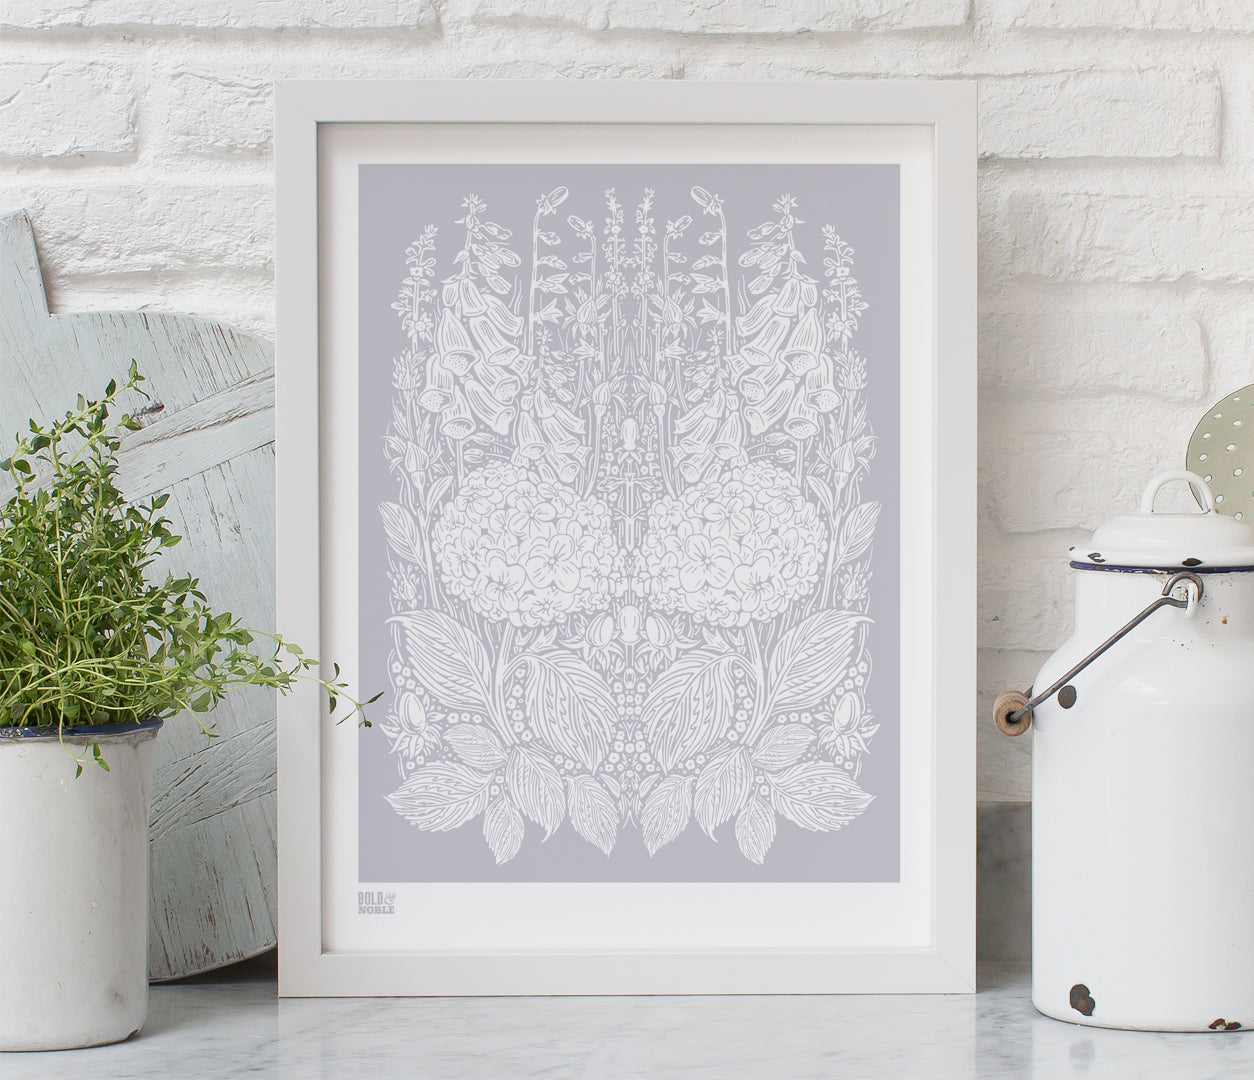 Pictures and Wall Art, Screen Printed Hydrangea Foxglove in Pink Grey